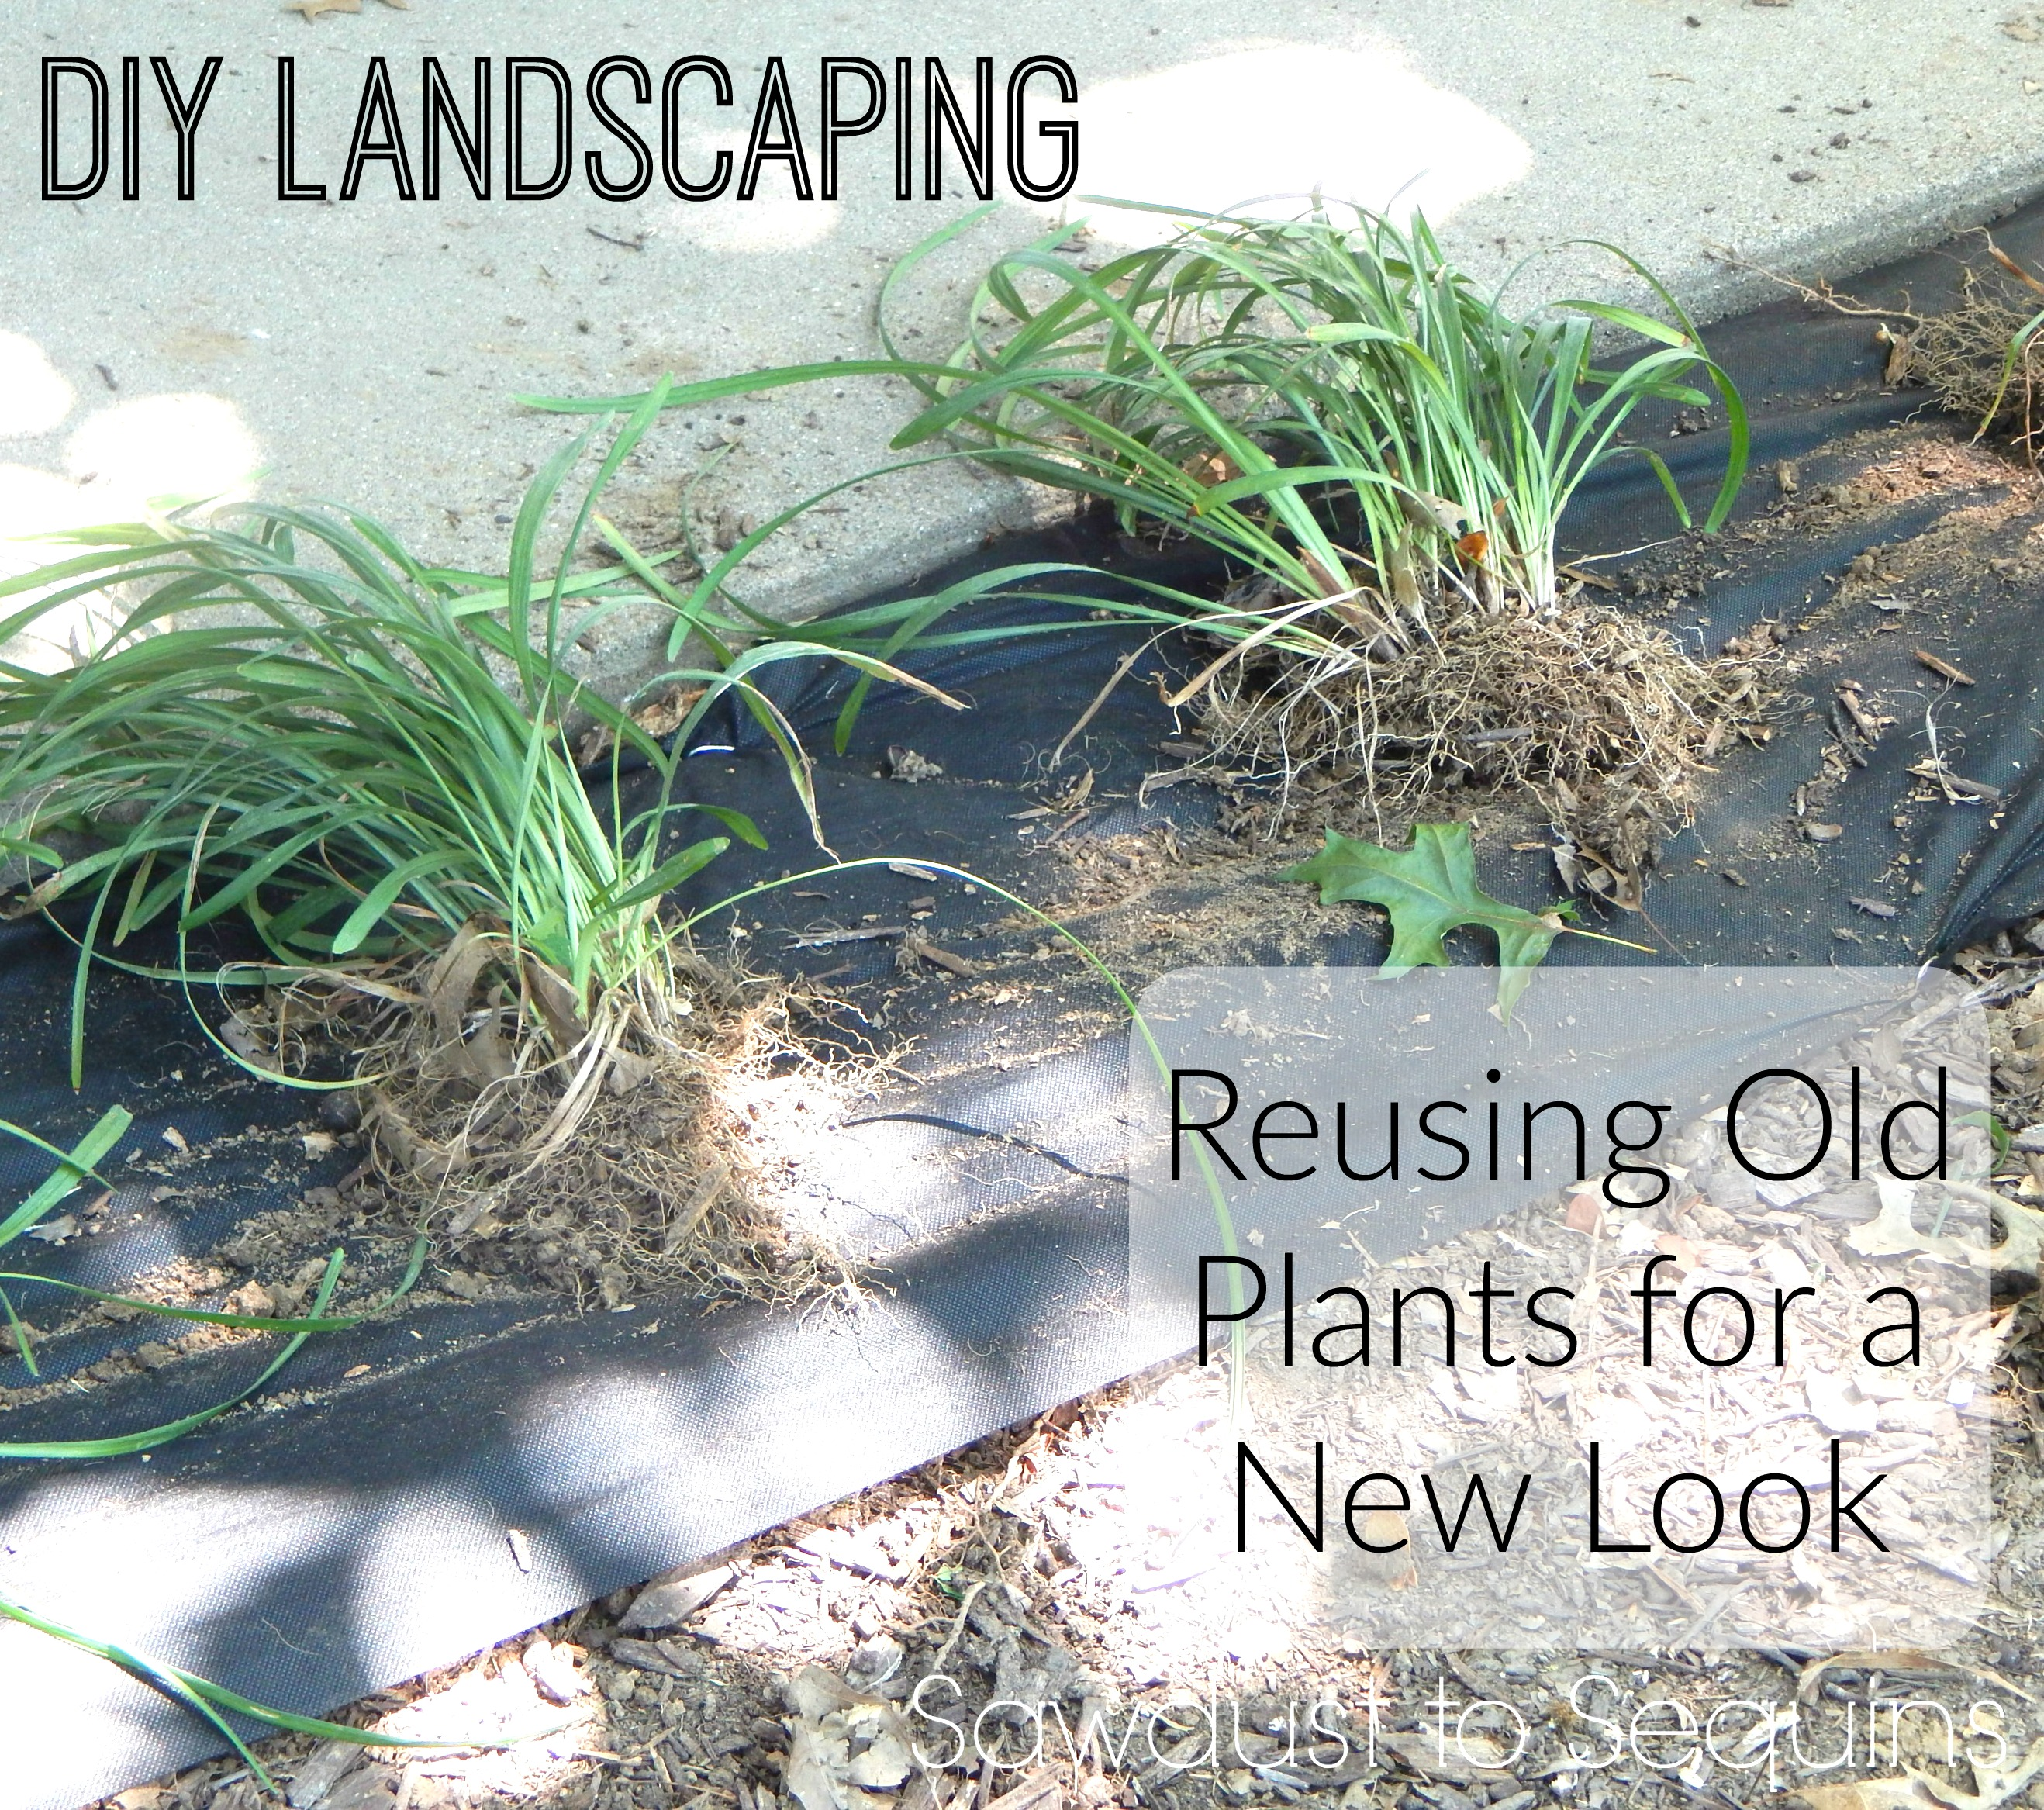 diy landscaping on the cheap sawdusttosequins com. DIY LANDSCAPING   REUSING OLD PLANTS FOR A NEW LOOK   Sawdust to